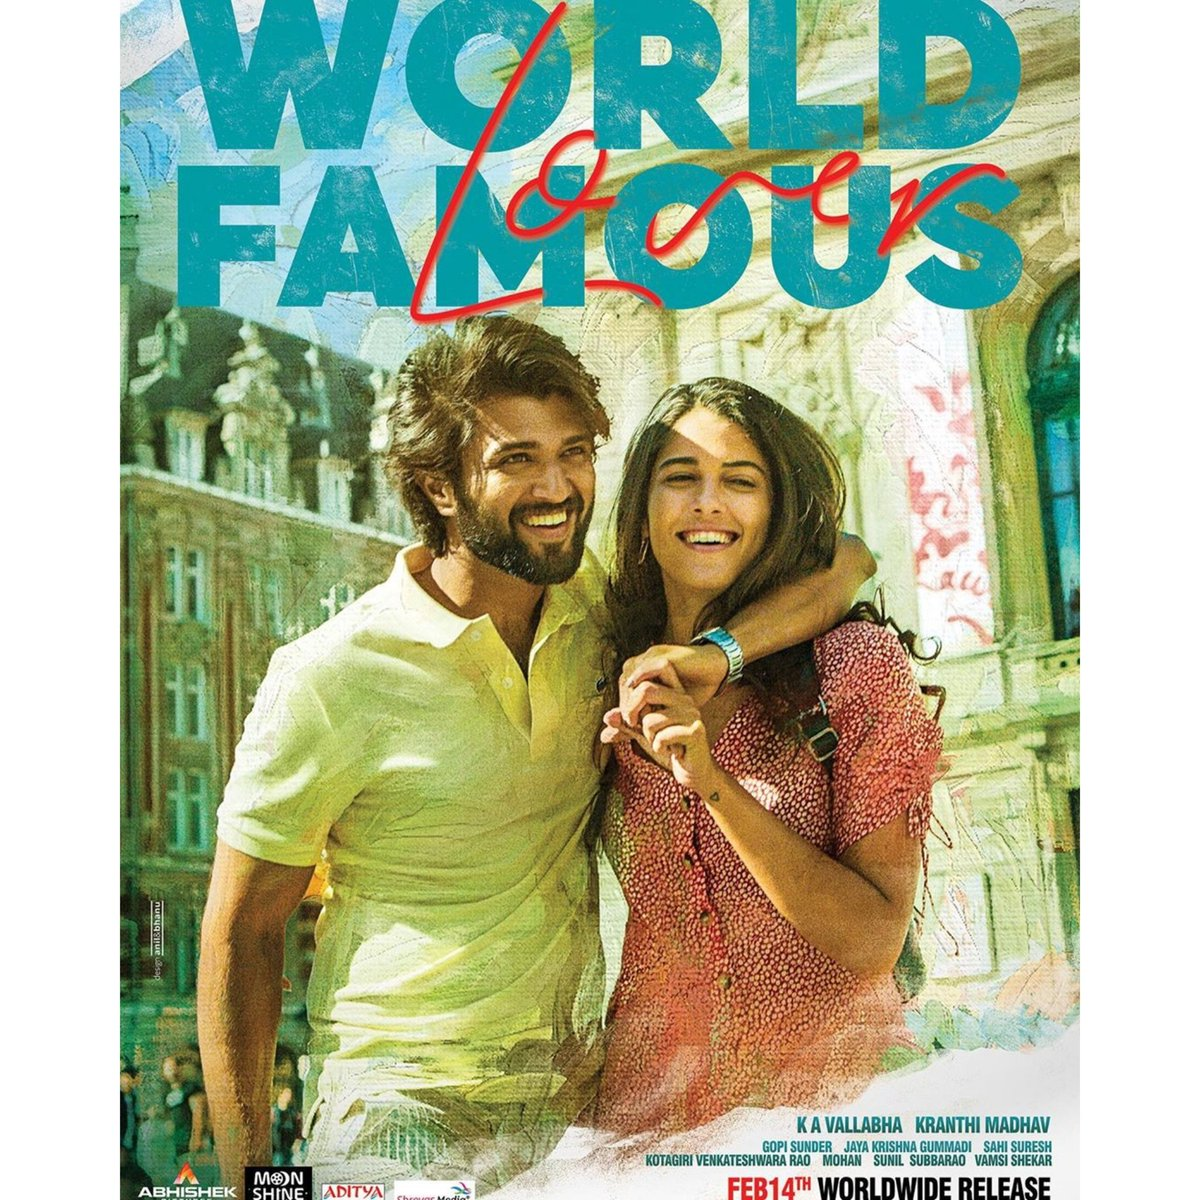 This #Valentineday, fall in ❤️ with #WorldFamouslover starring @TheDeverakonda, @aishu_dil @RaashiKhanna, @CatherineTresa1 & @izabelleleite25. The film directed by #kranthimadhav is out today and will take you to 🇫🇷 in Arcachon, Biarritz, Lille and ofc the City of 💖 Paris! #wfl